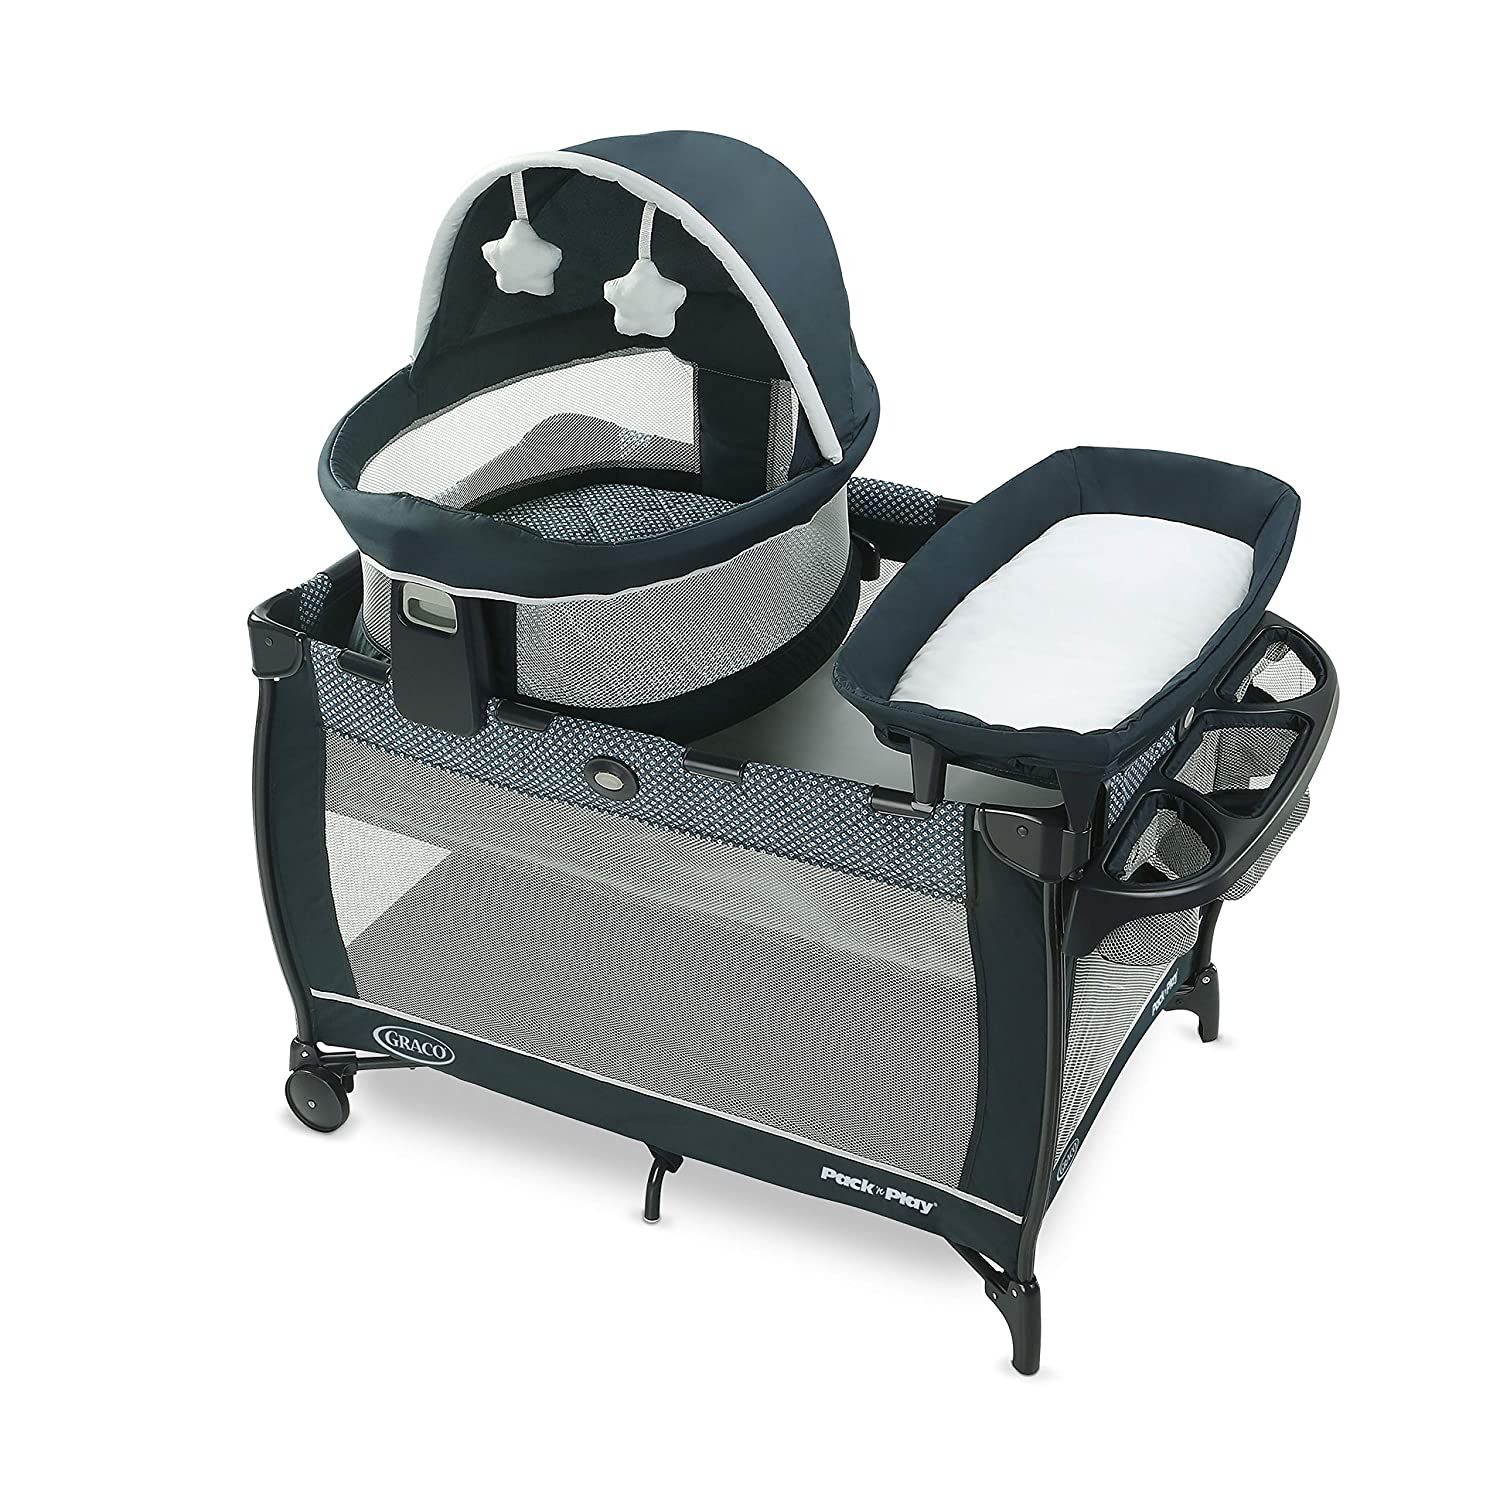 Graco Pack 'n Play Travel Dome LX Playard | Includes Portable Bassinet, Full-Size Infant Bassinet, and Diaper Changer, Leyton